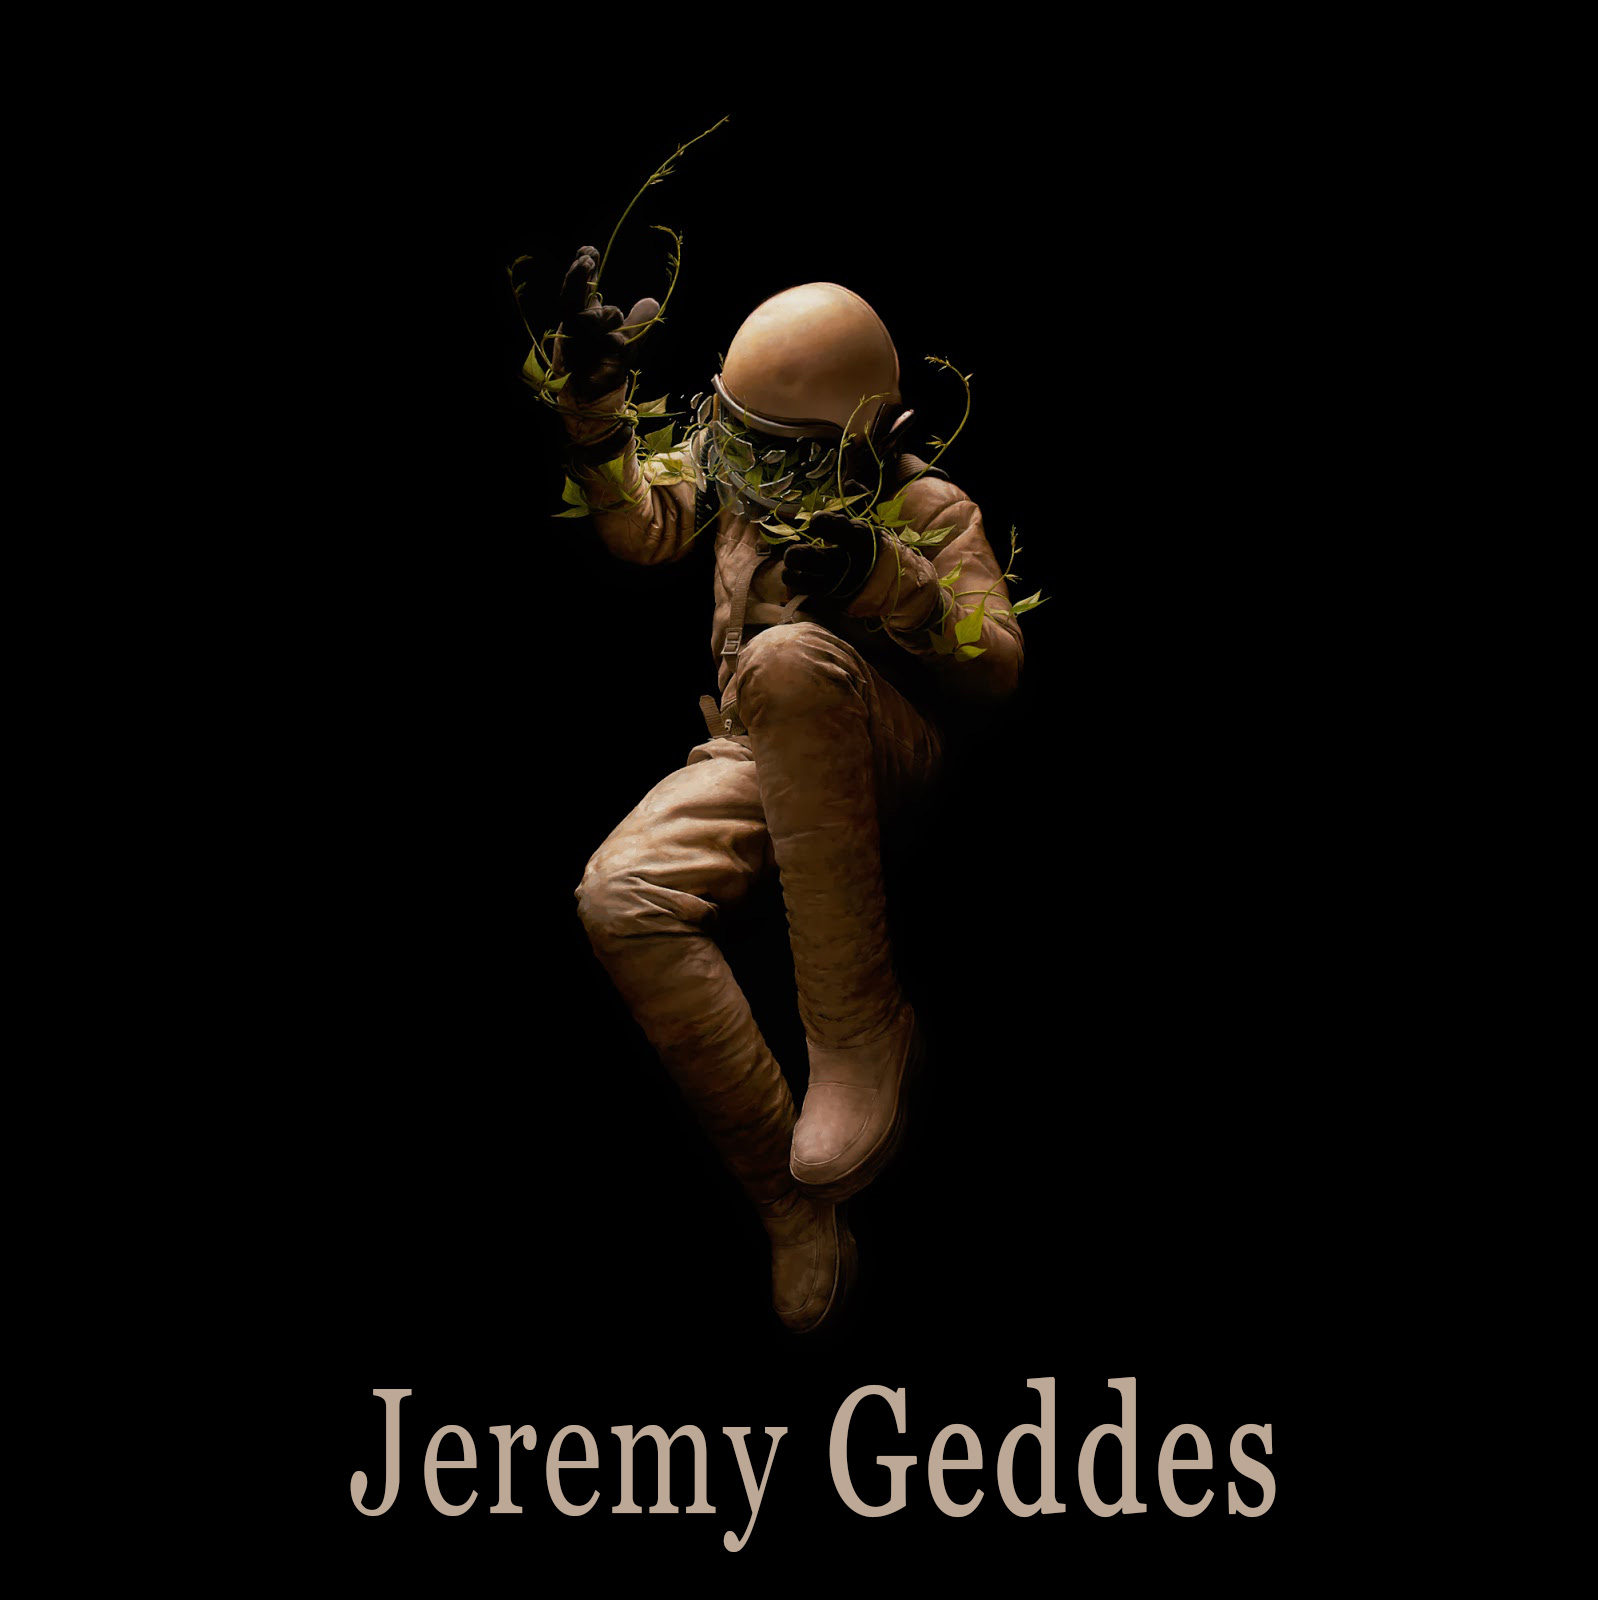 jeremy geddes the hyper realism interview noeyeddeerdotnet this is the third interview in the realism series and i gotta say that jeremy geddes is one of the most impressive and hardworking people who i ve ever had